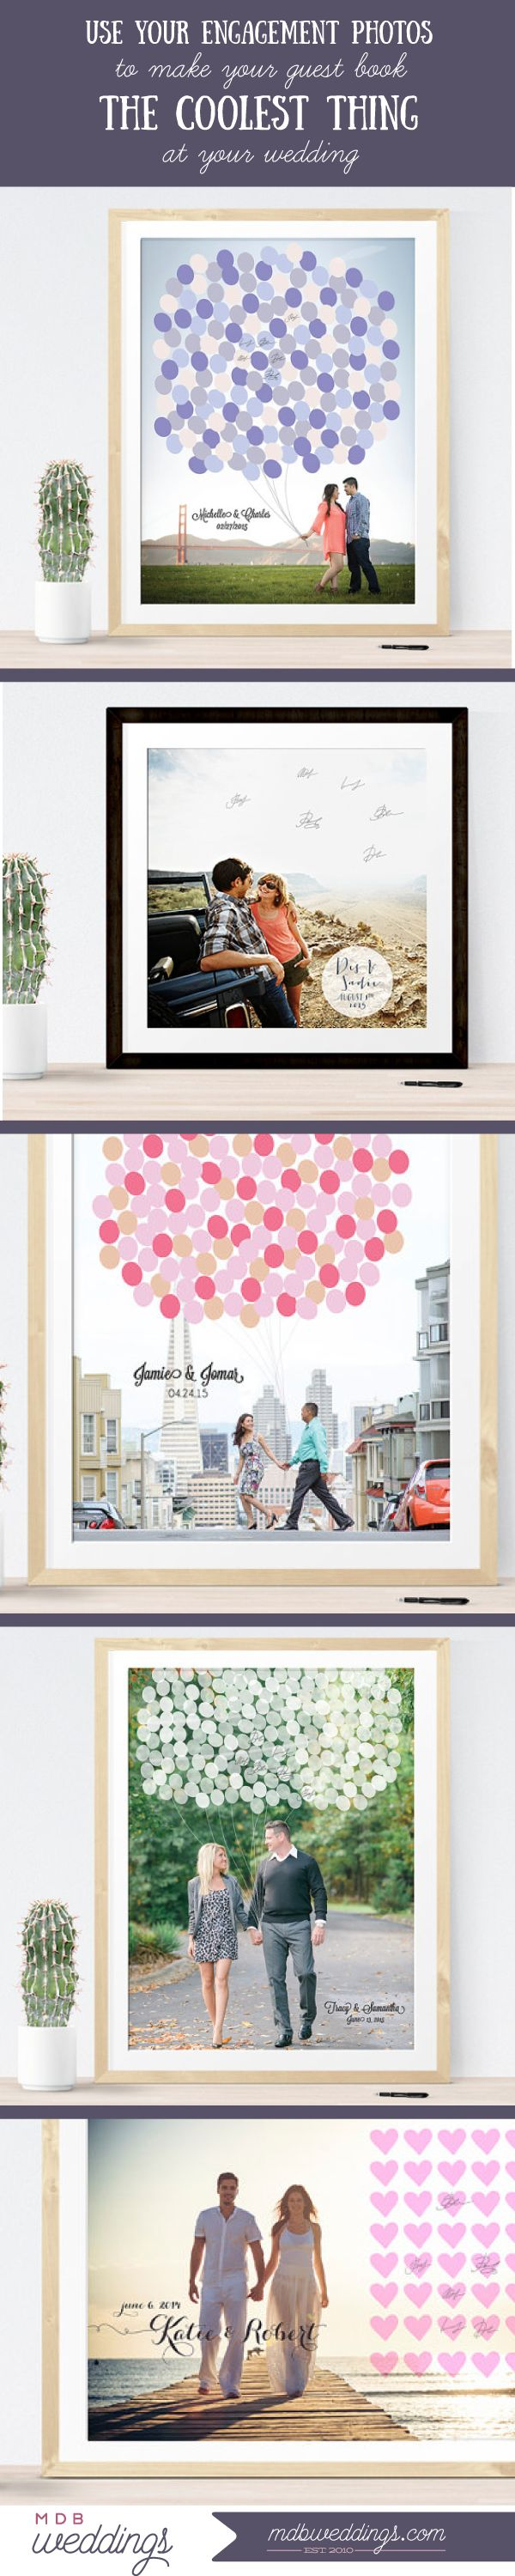 Use your engagement photos to make your #guestbook the coolest thing at your wedding!